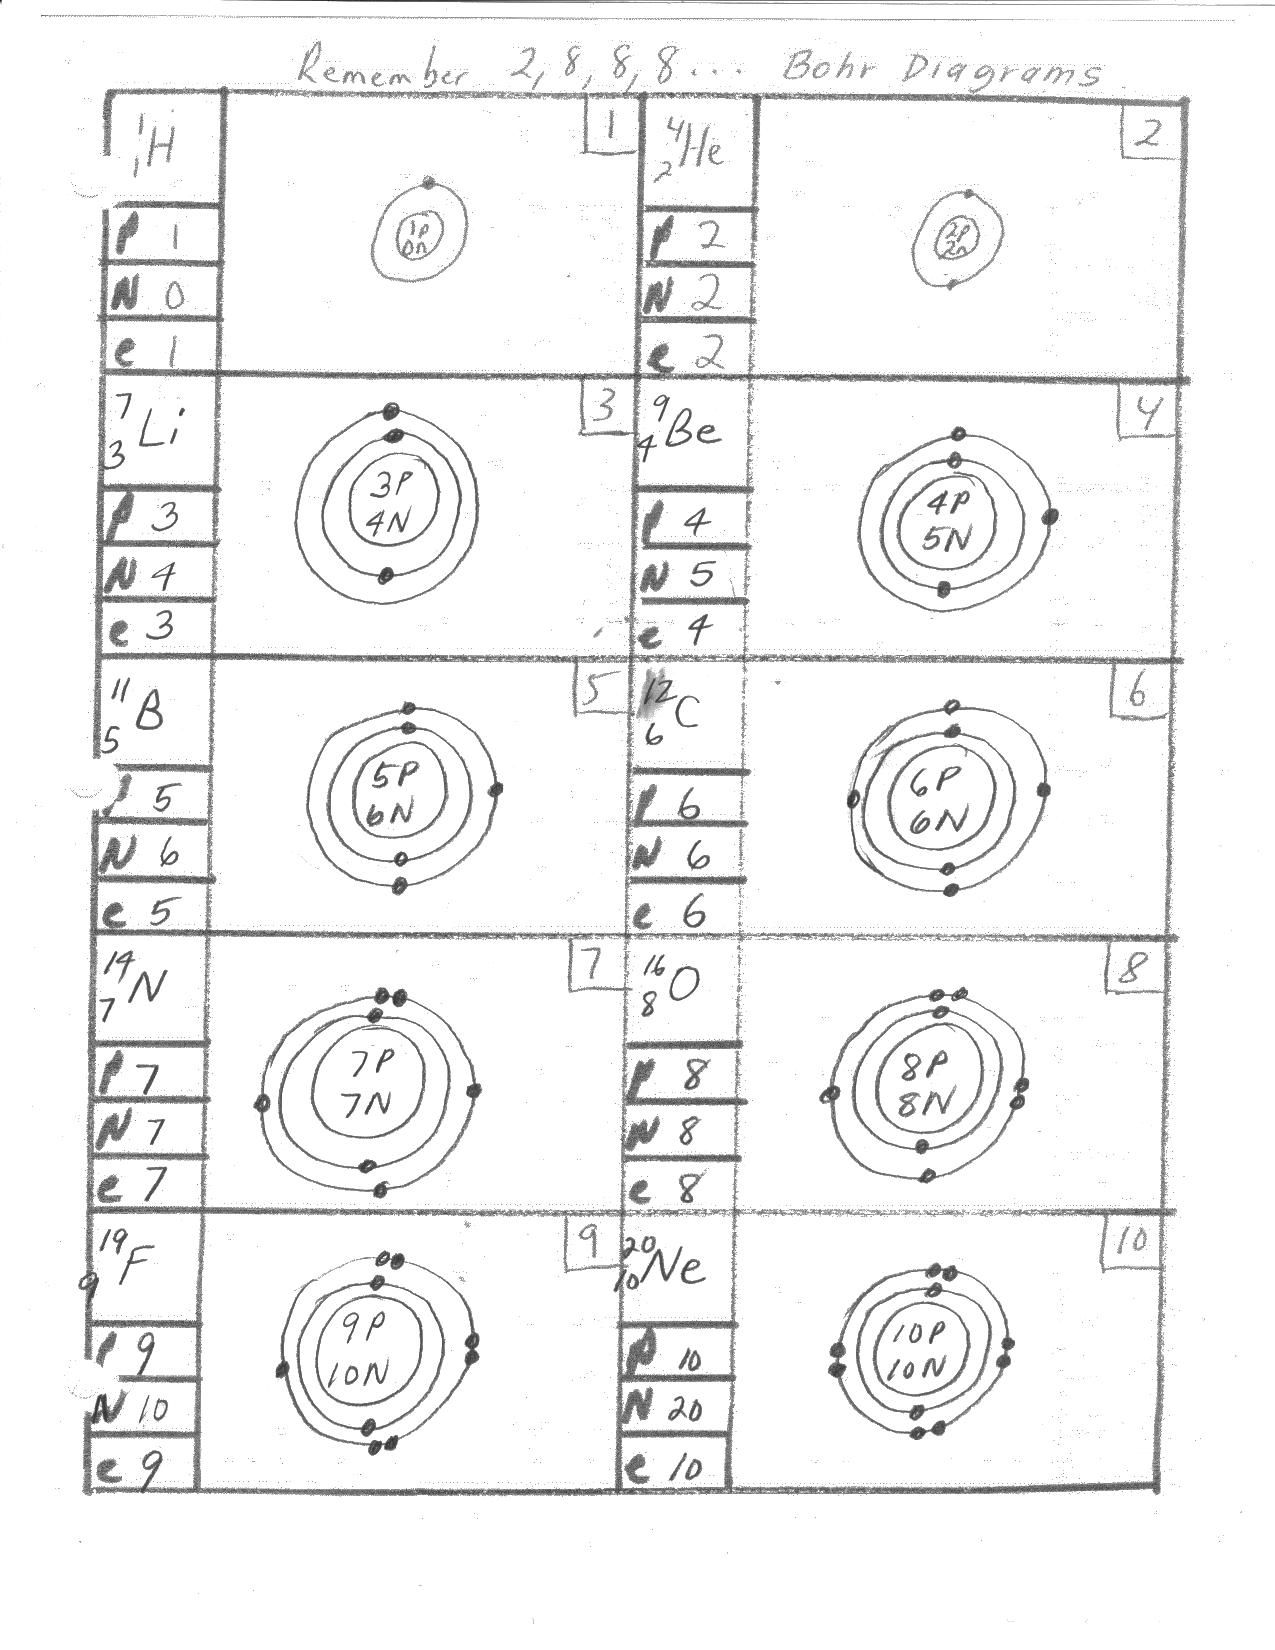 Mar 8 23 Bohr Rutherford Diagrams 1 10 11 20 1 14 Chemical Formulas